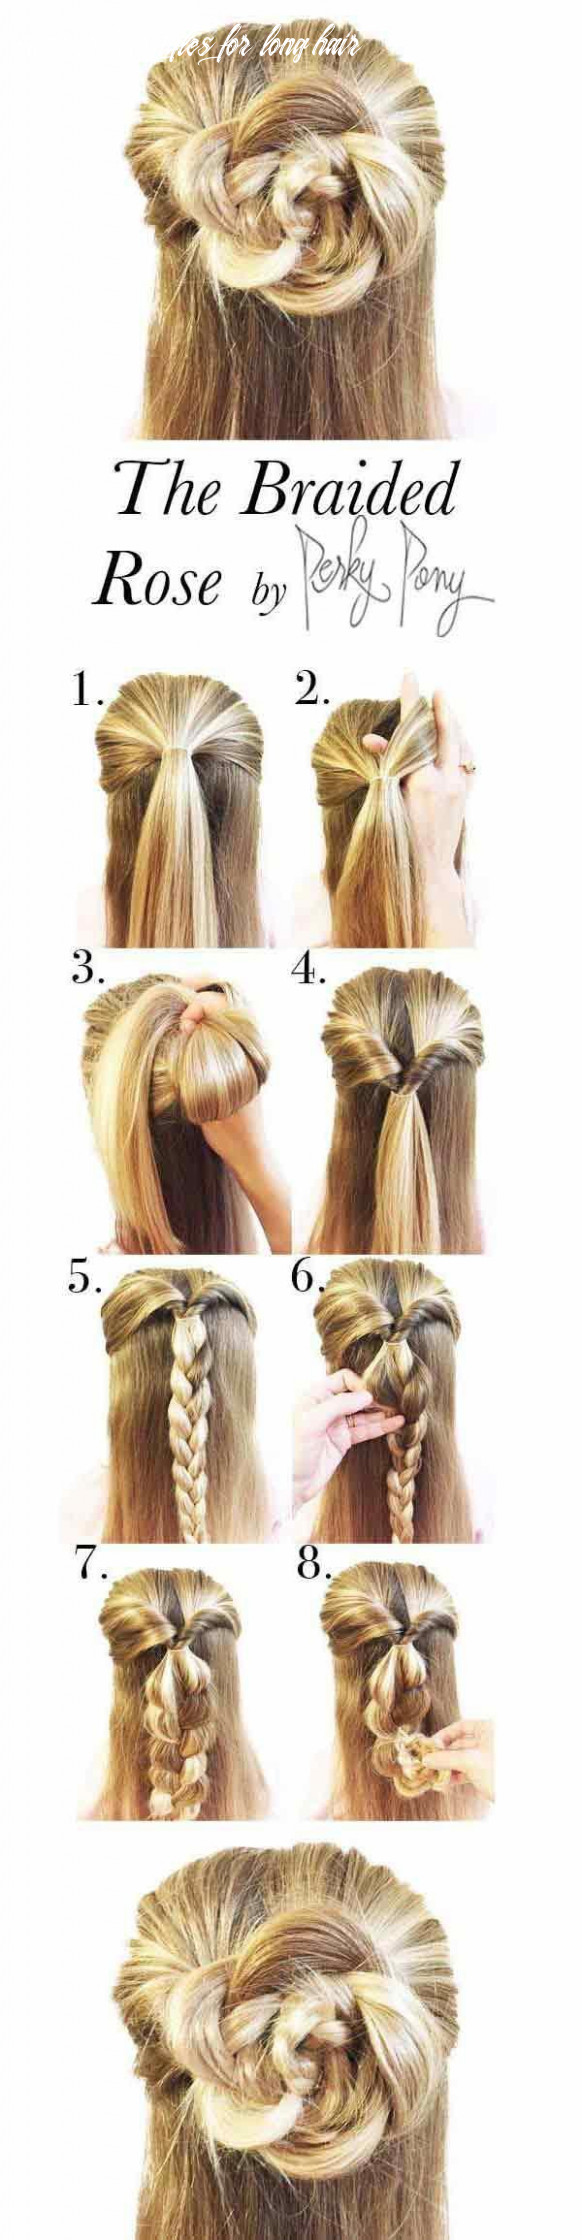 12 easy summer hairstyle tutorials for long hair | style & beauty summer hairstyles for long hair